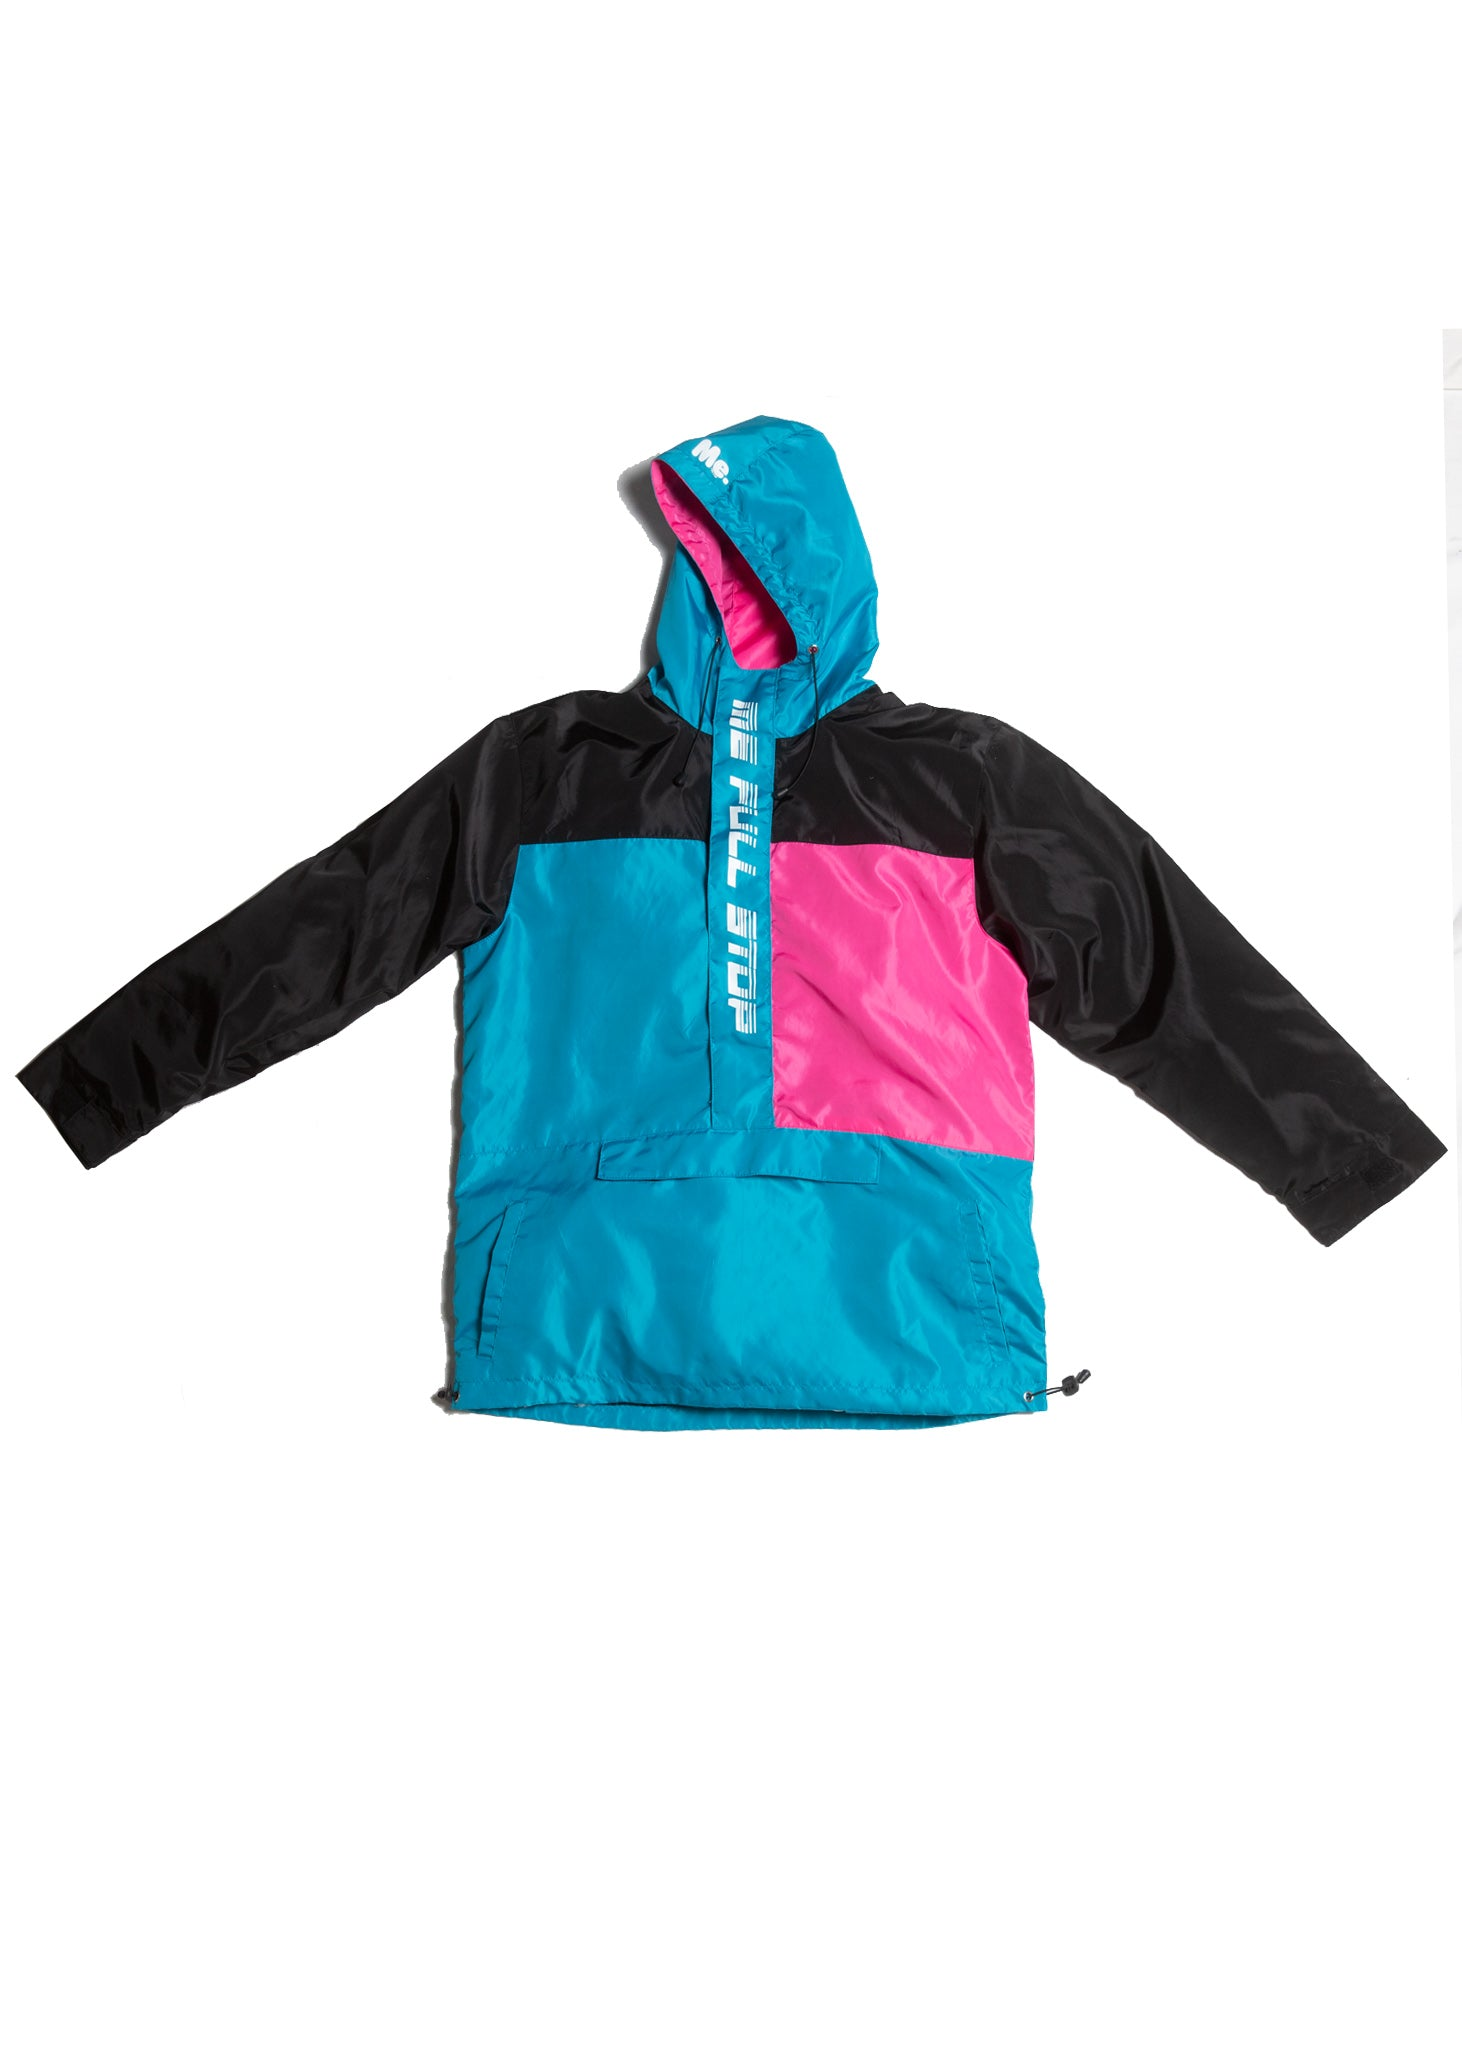 Miami Vaporwave Windbreaker